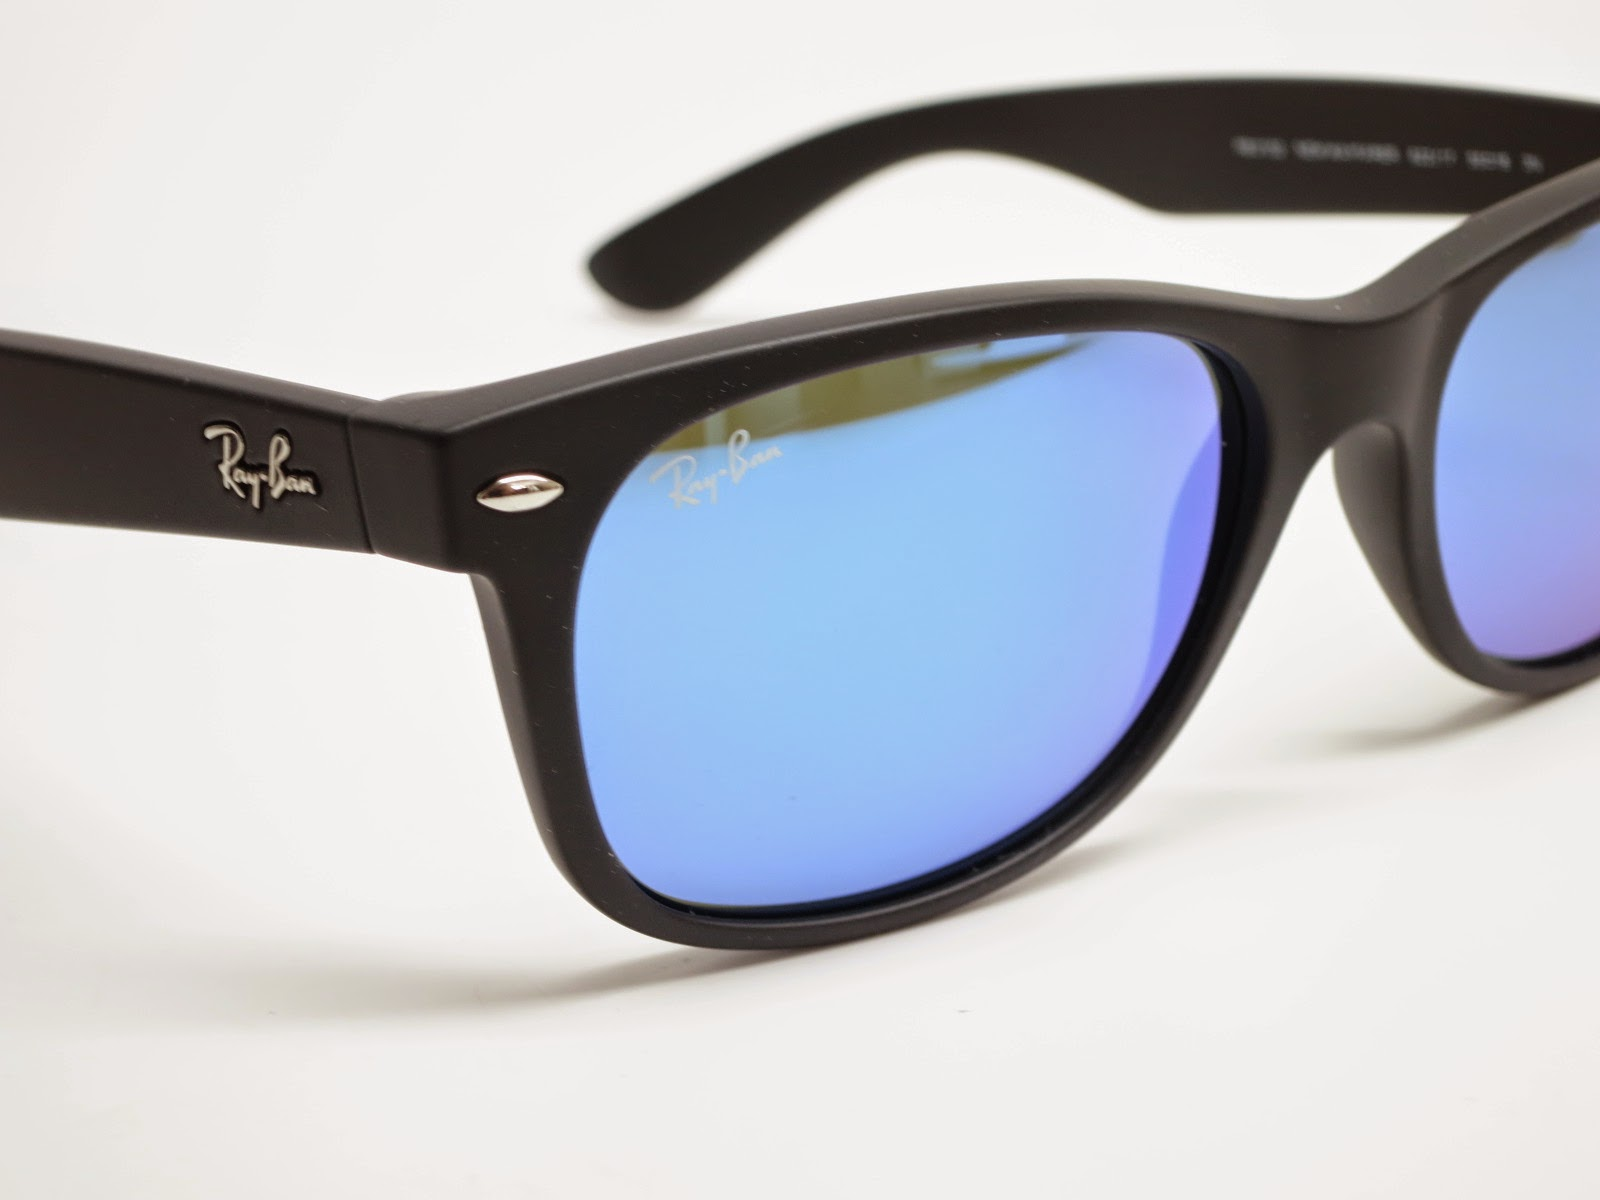 63b7d6de7c3 Fake Ray Ban 2132 55mm « Heritage Malta